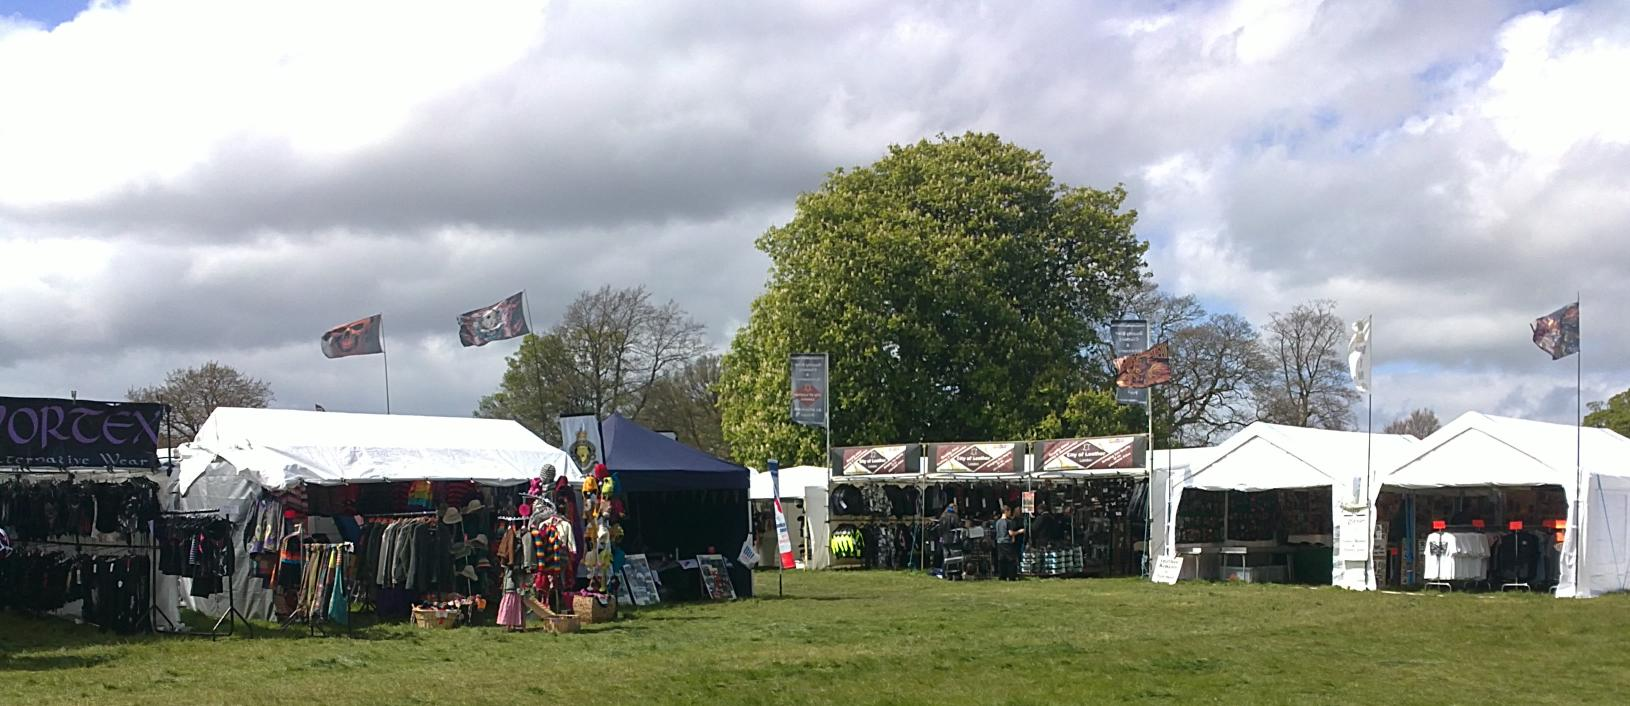 Some of the traders on site